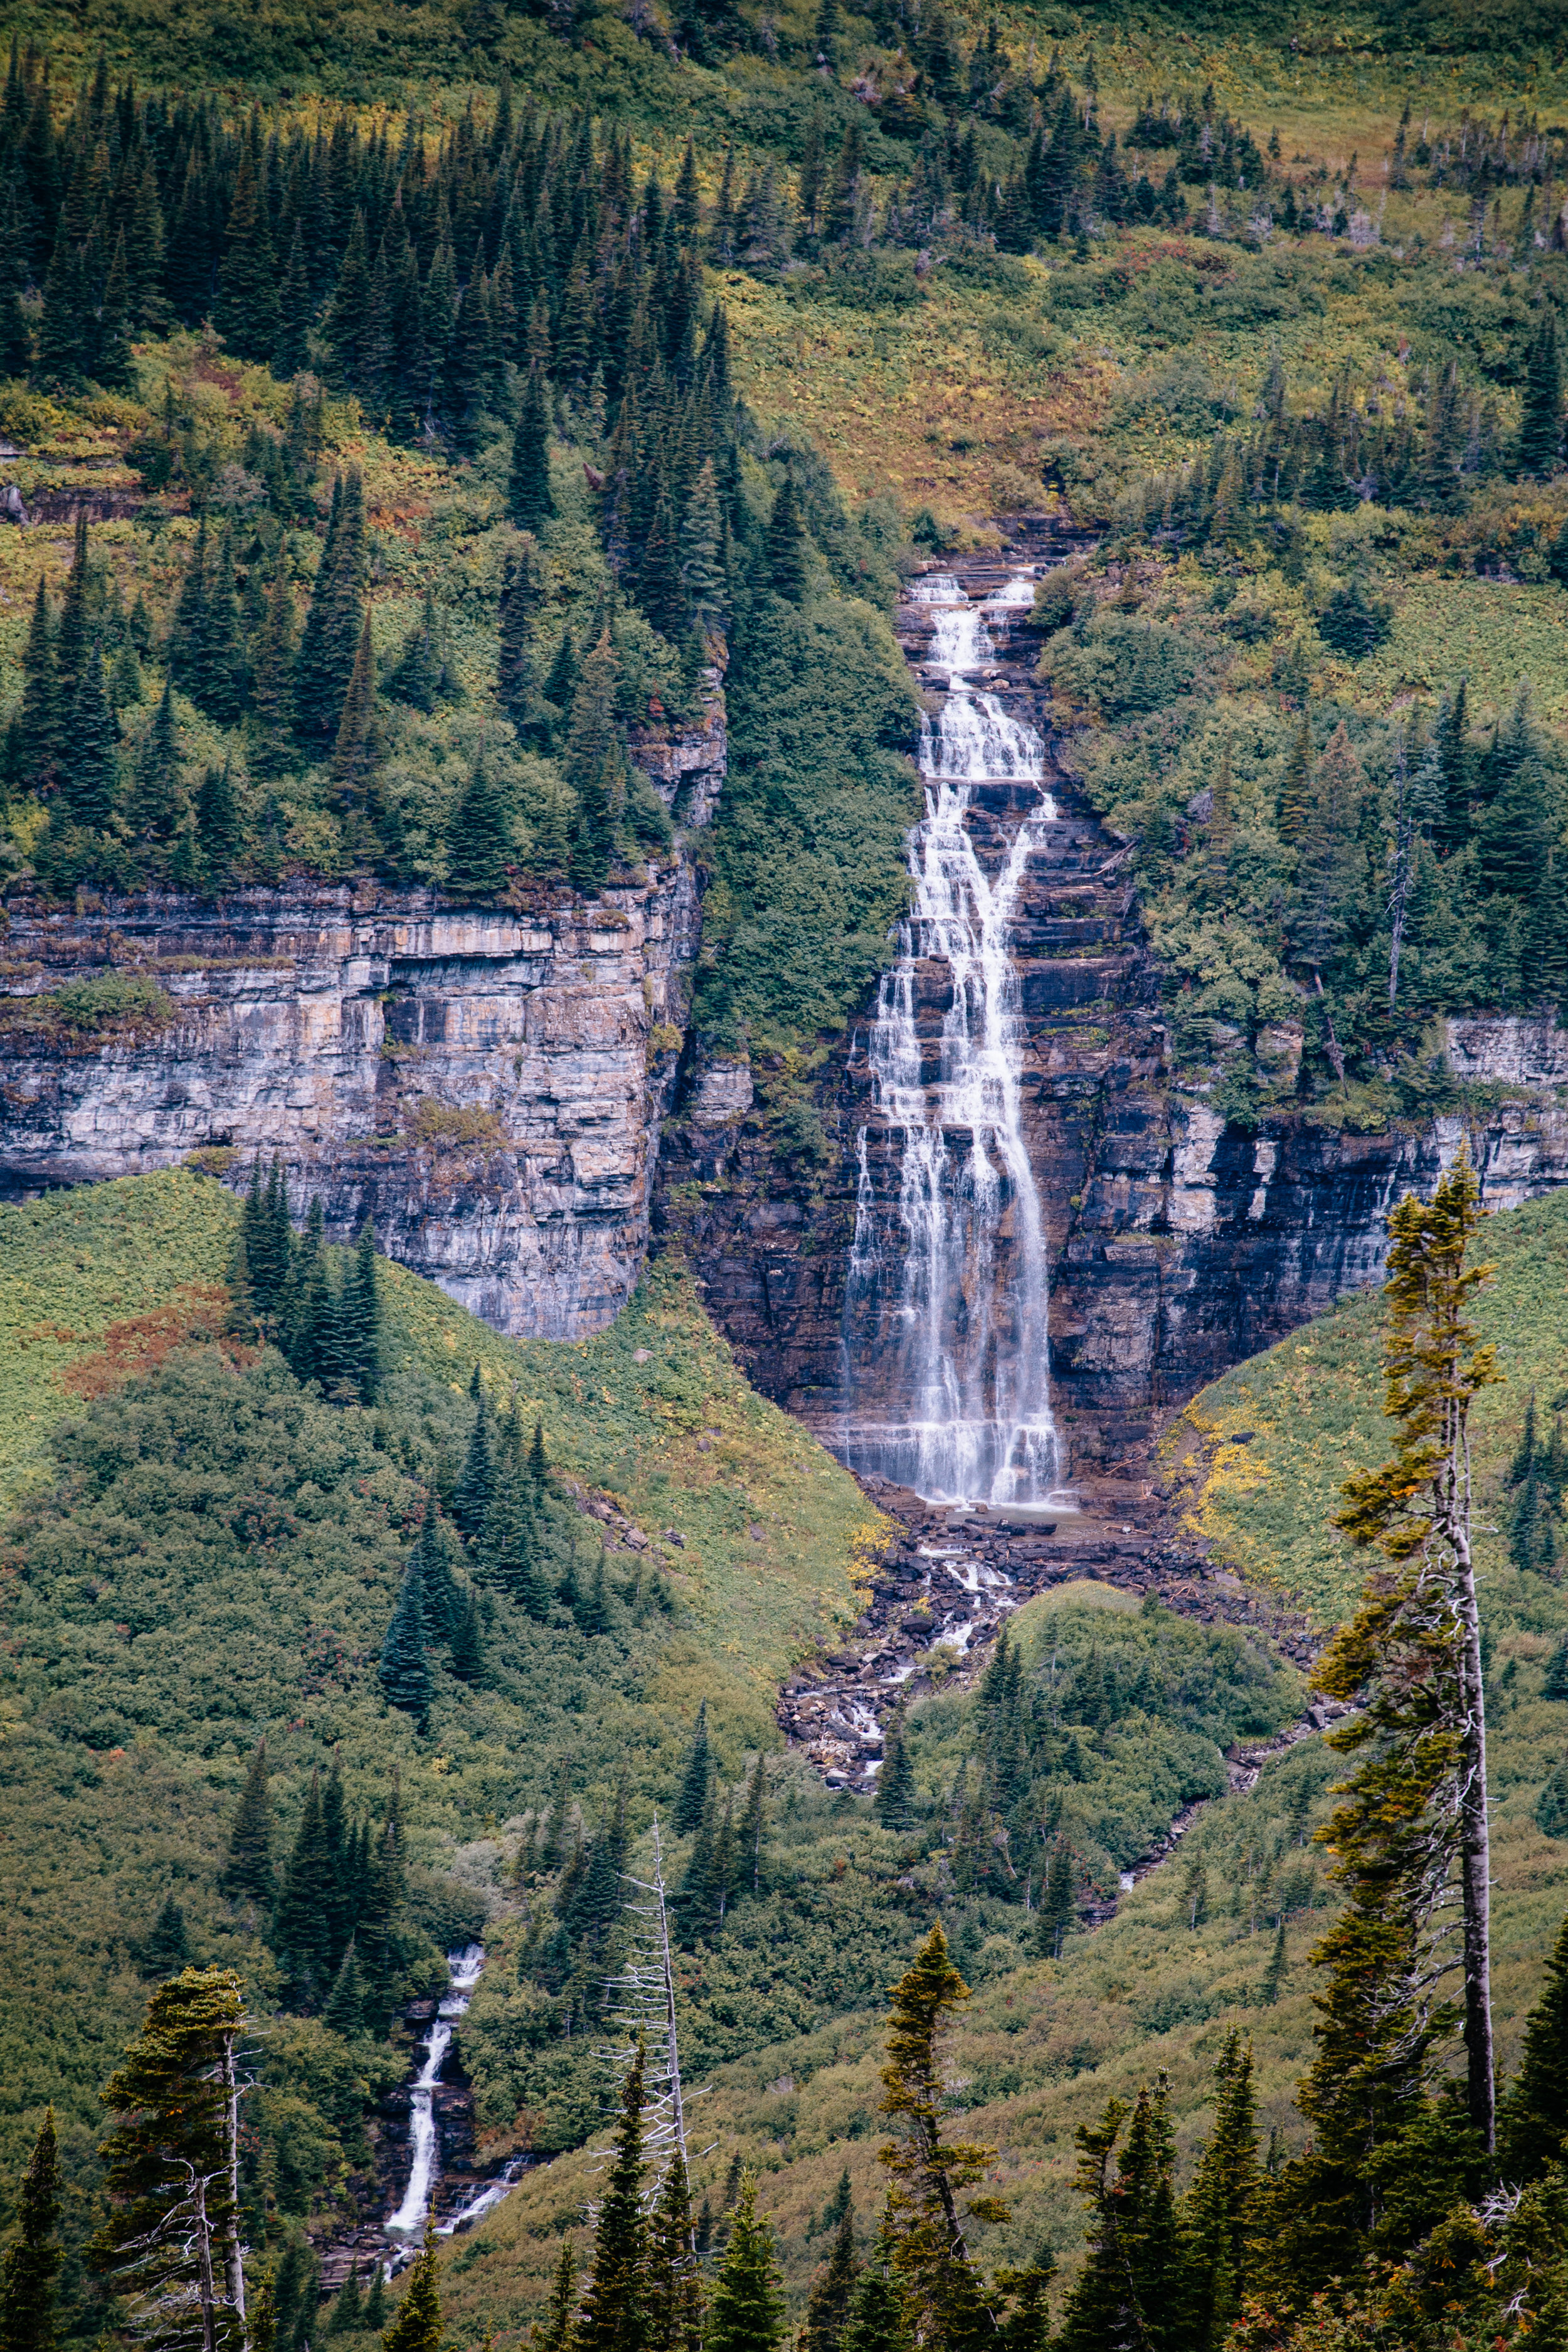 One of the many waterfalls along Going-to-the-Sun Road